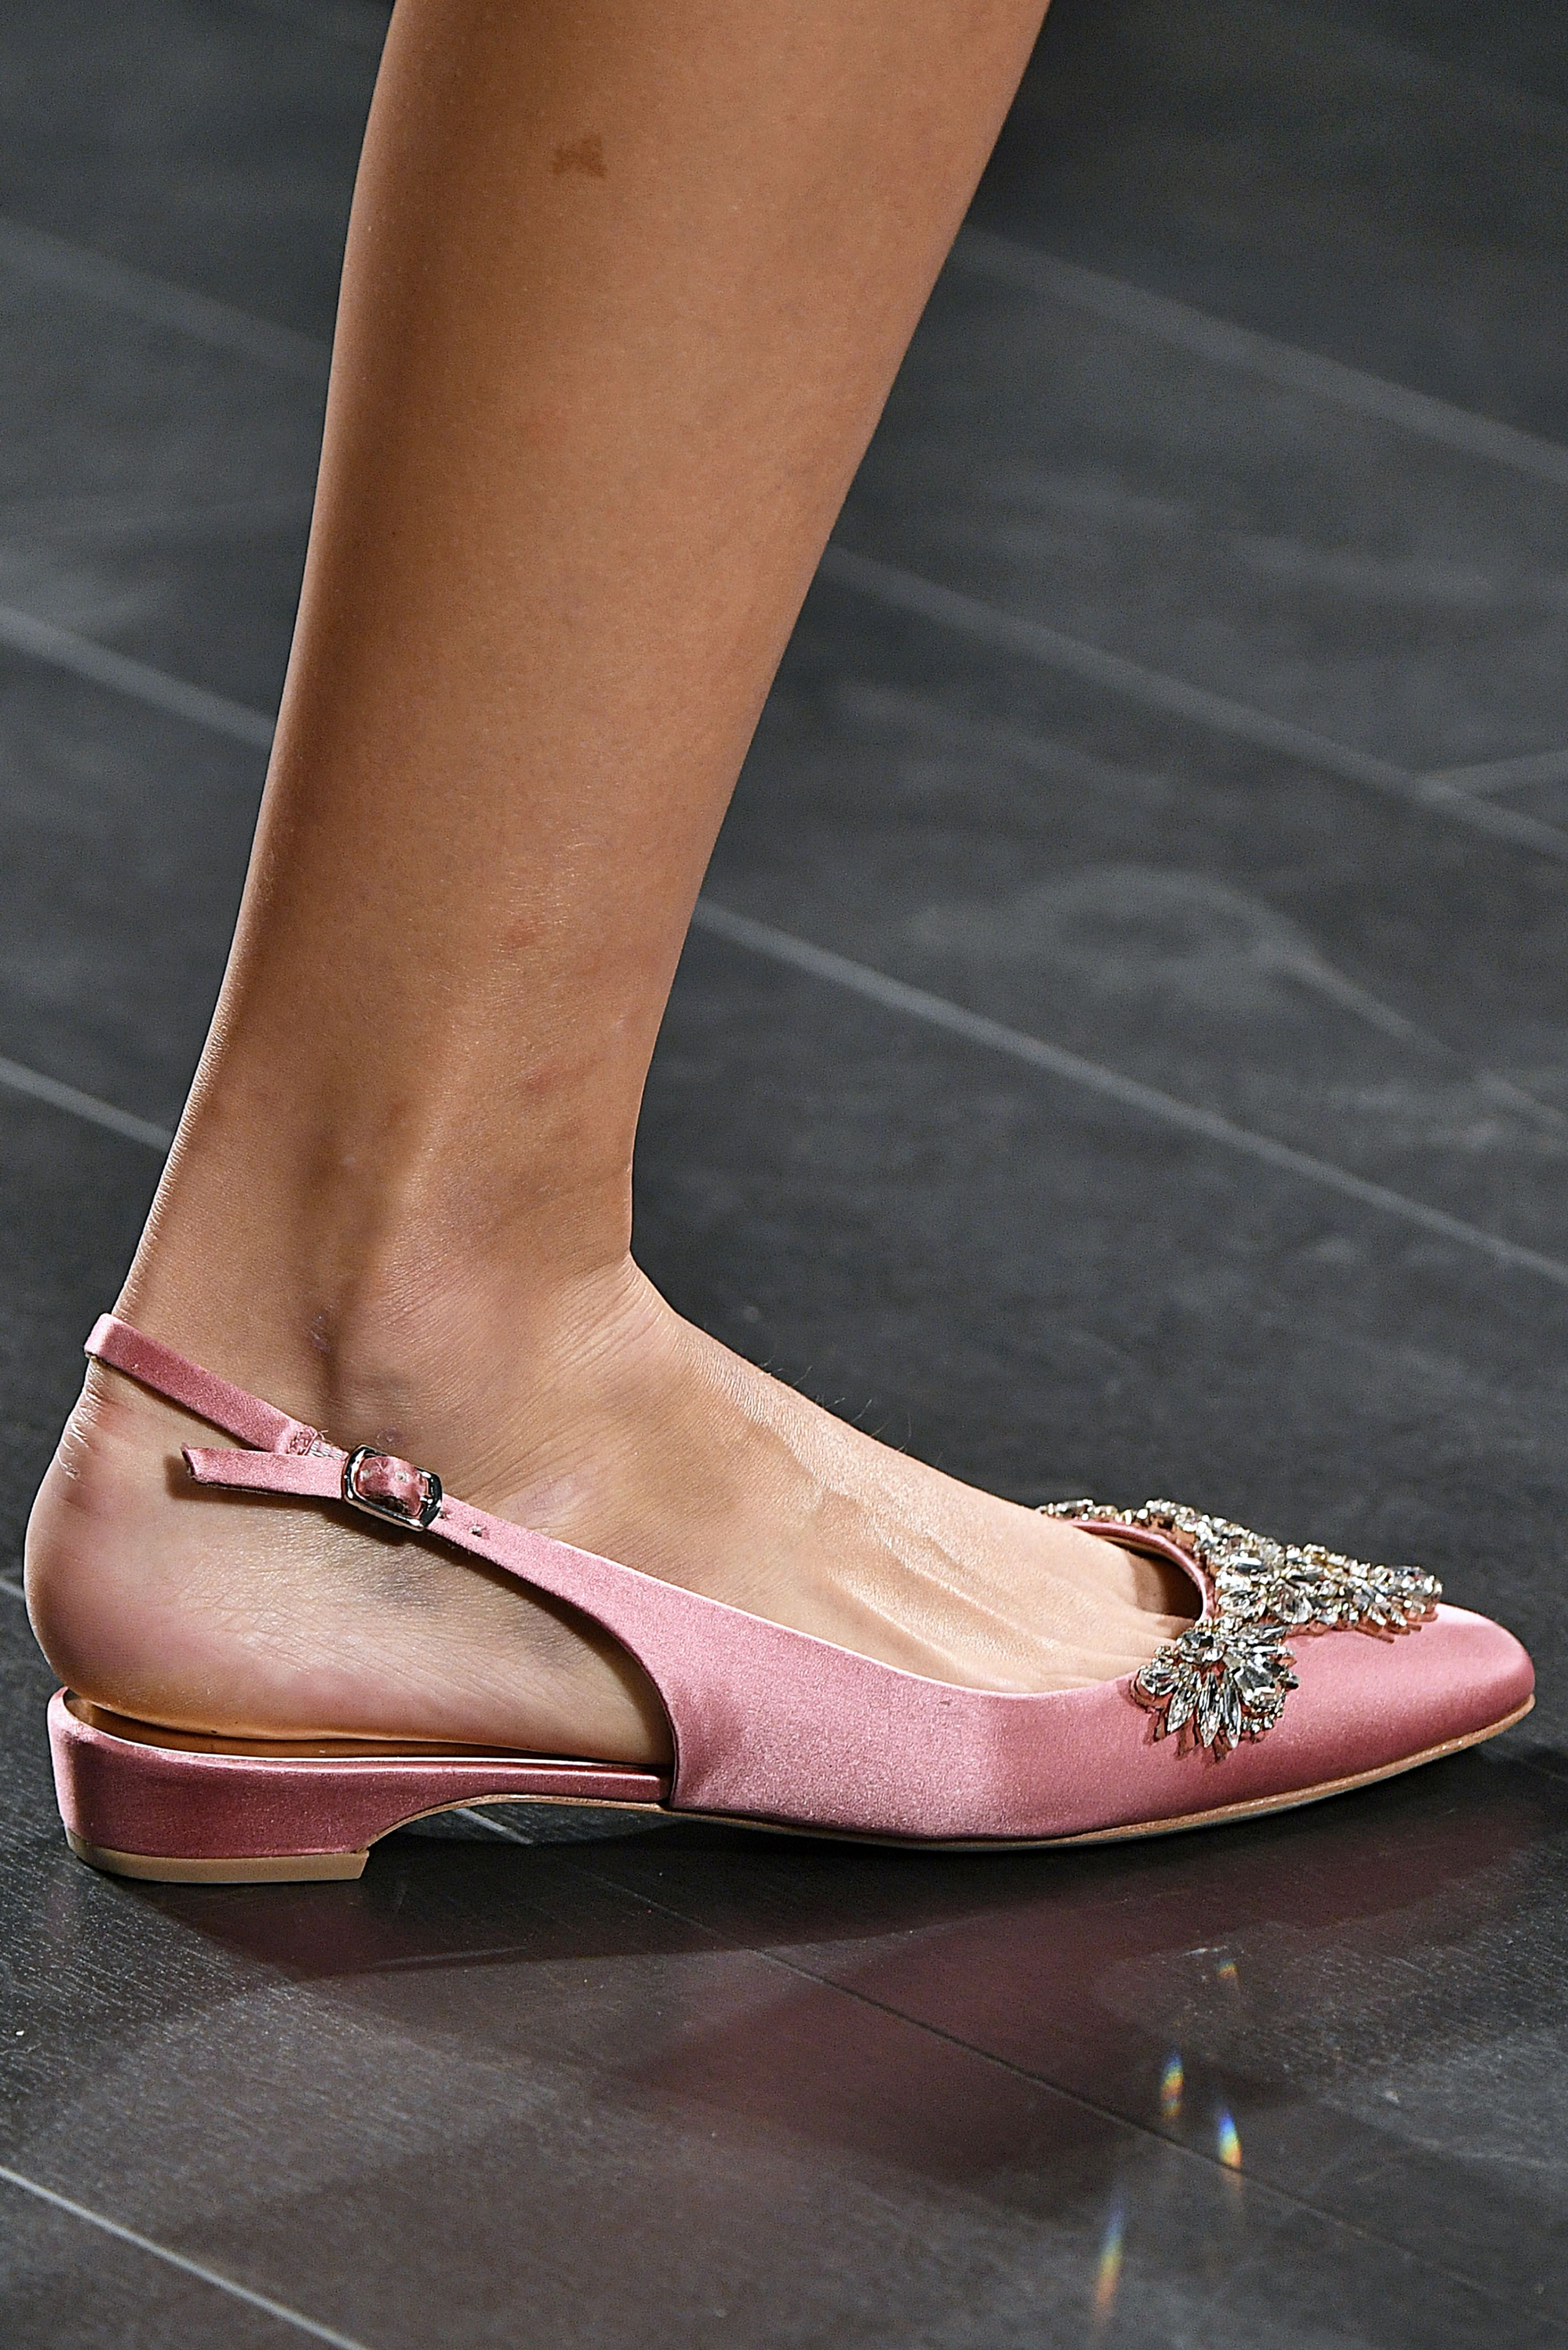 Spring 2018 Shoe Trends - The Hottest